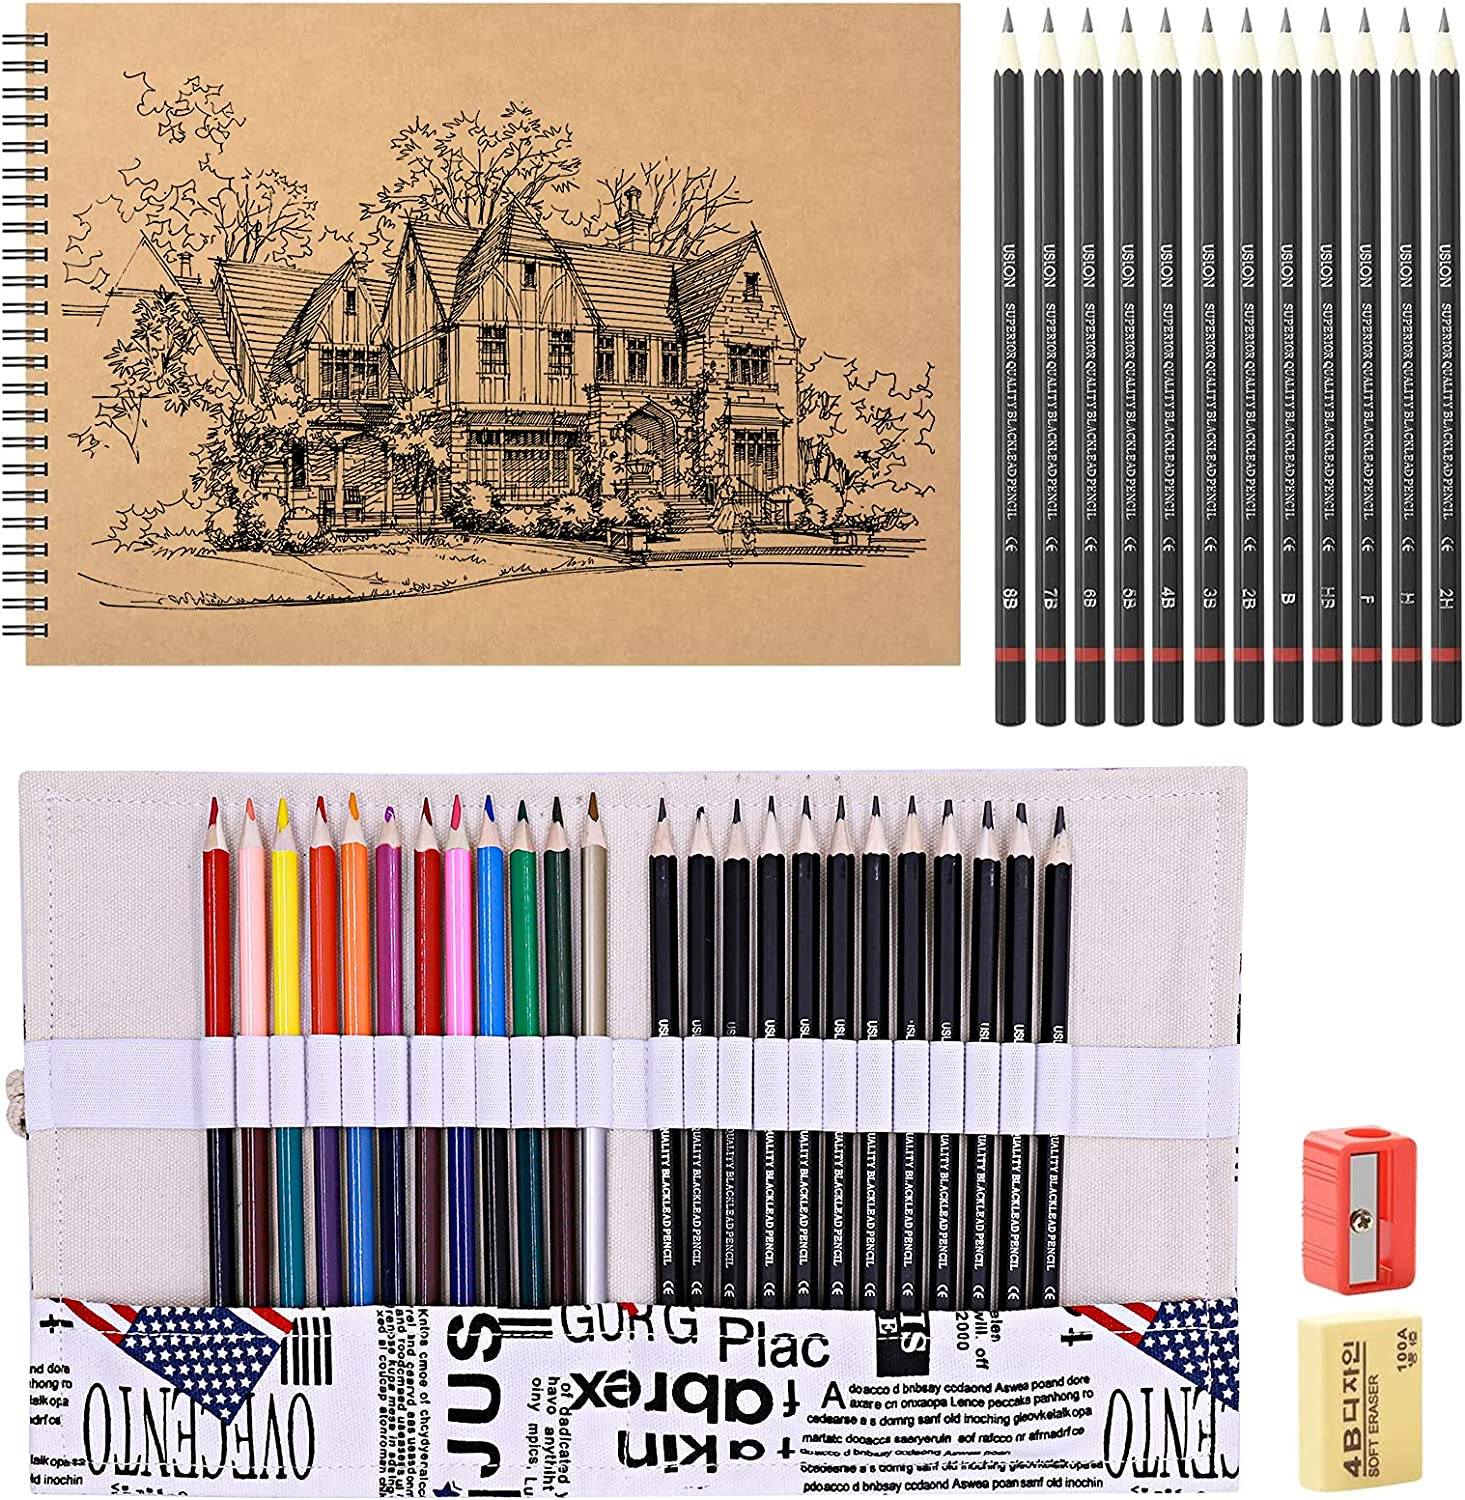 HomeMall Sketching Popularity Pencils Set Supplies Drawin 40-Piece Drawing Directly managed store